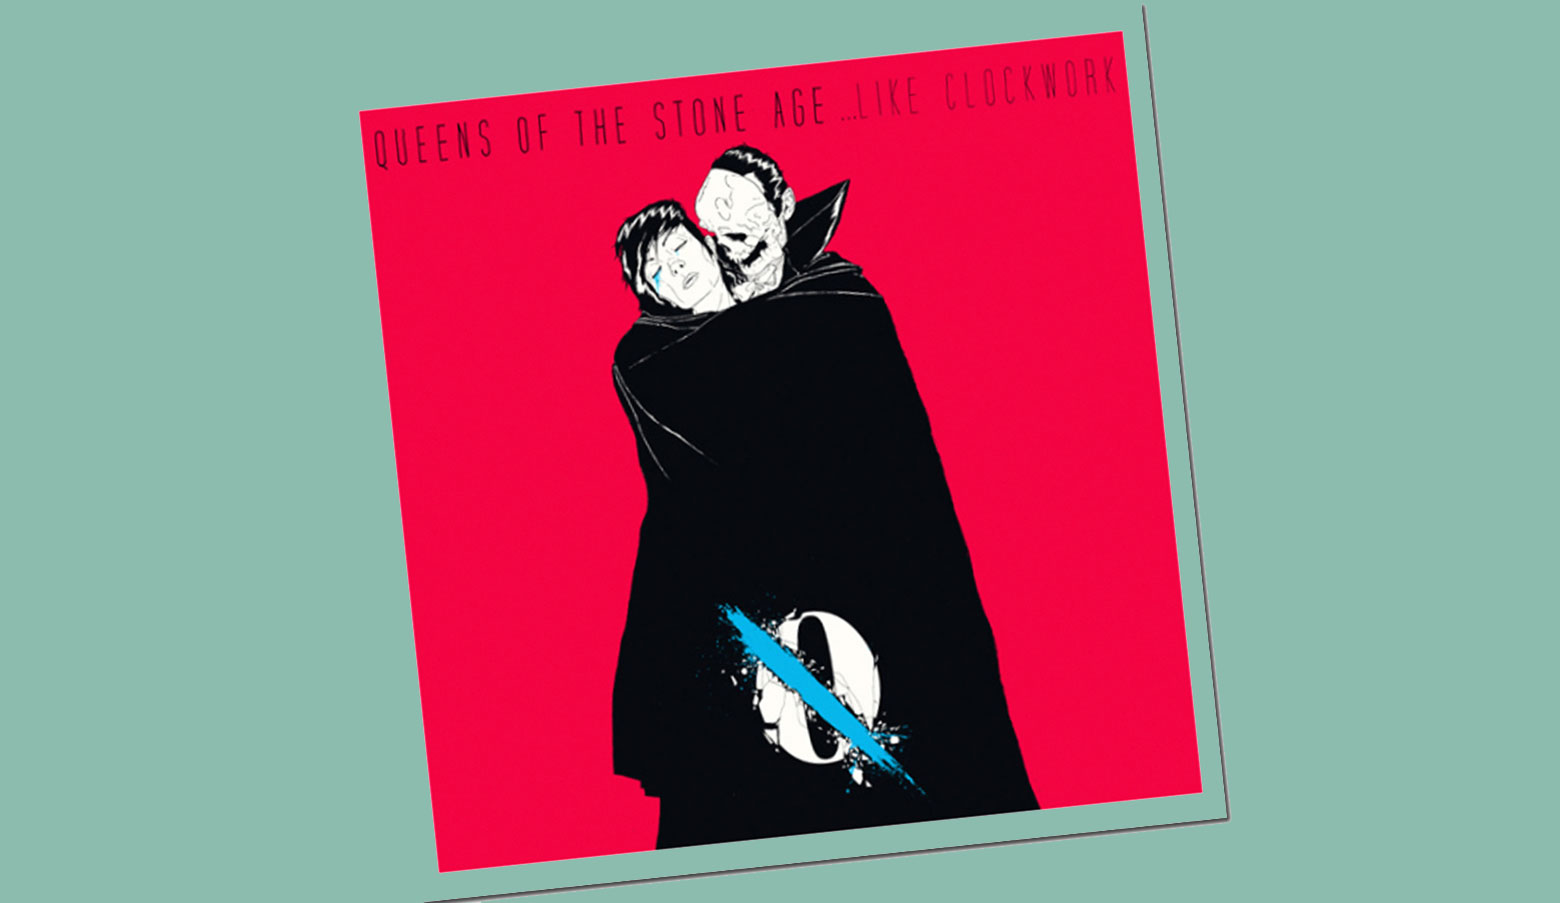 1035x1047-111913-queens-of-the-stoneage-1800-1384897011